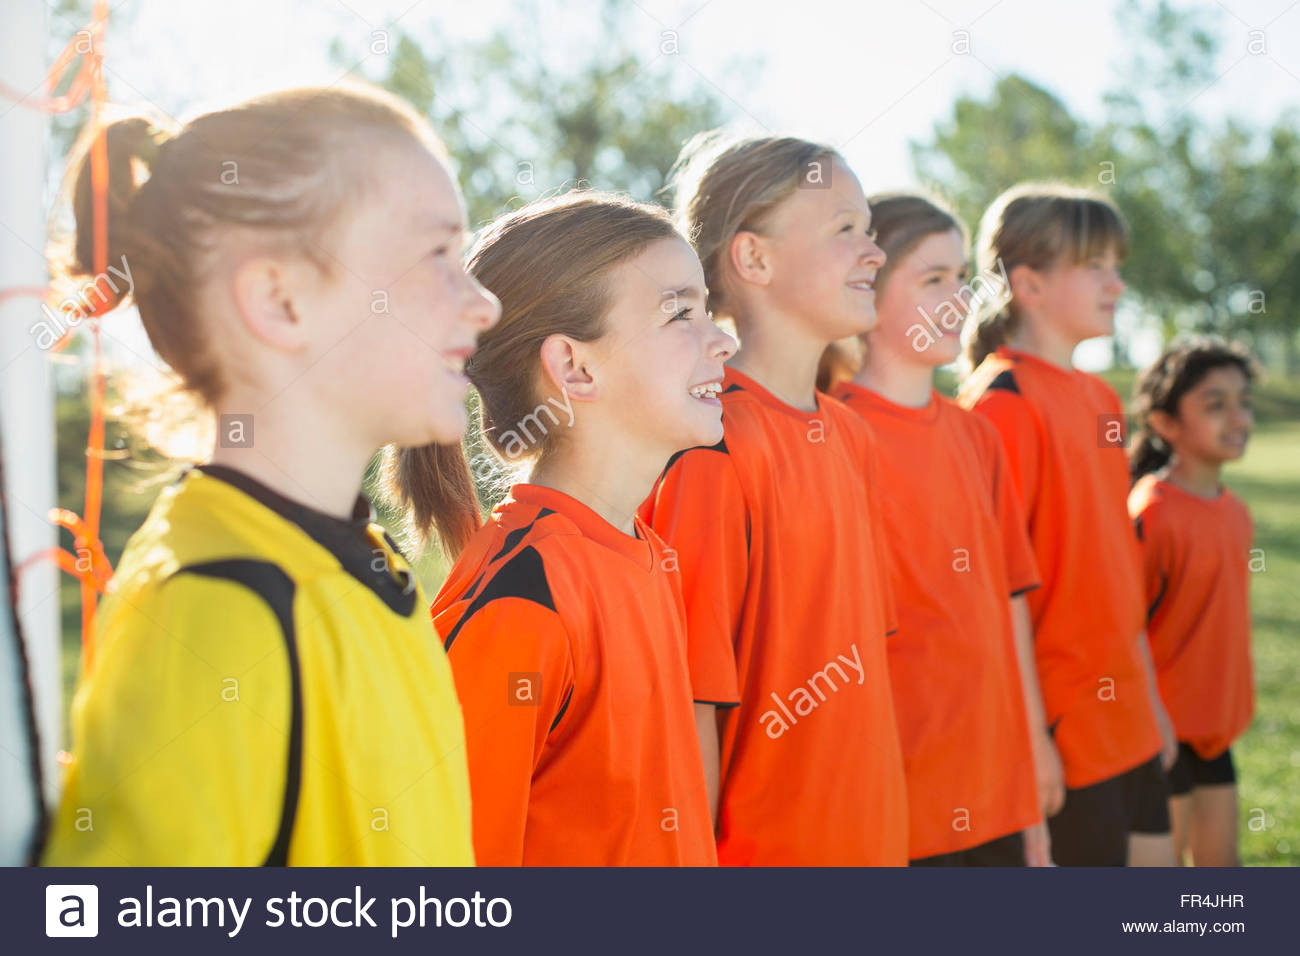 young female soccer players lined up - Stock Image